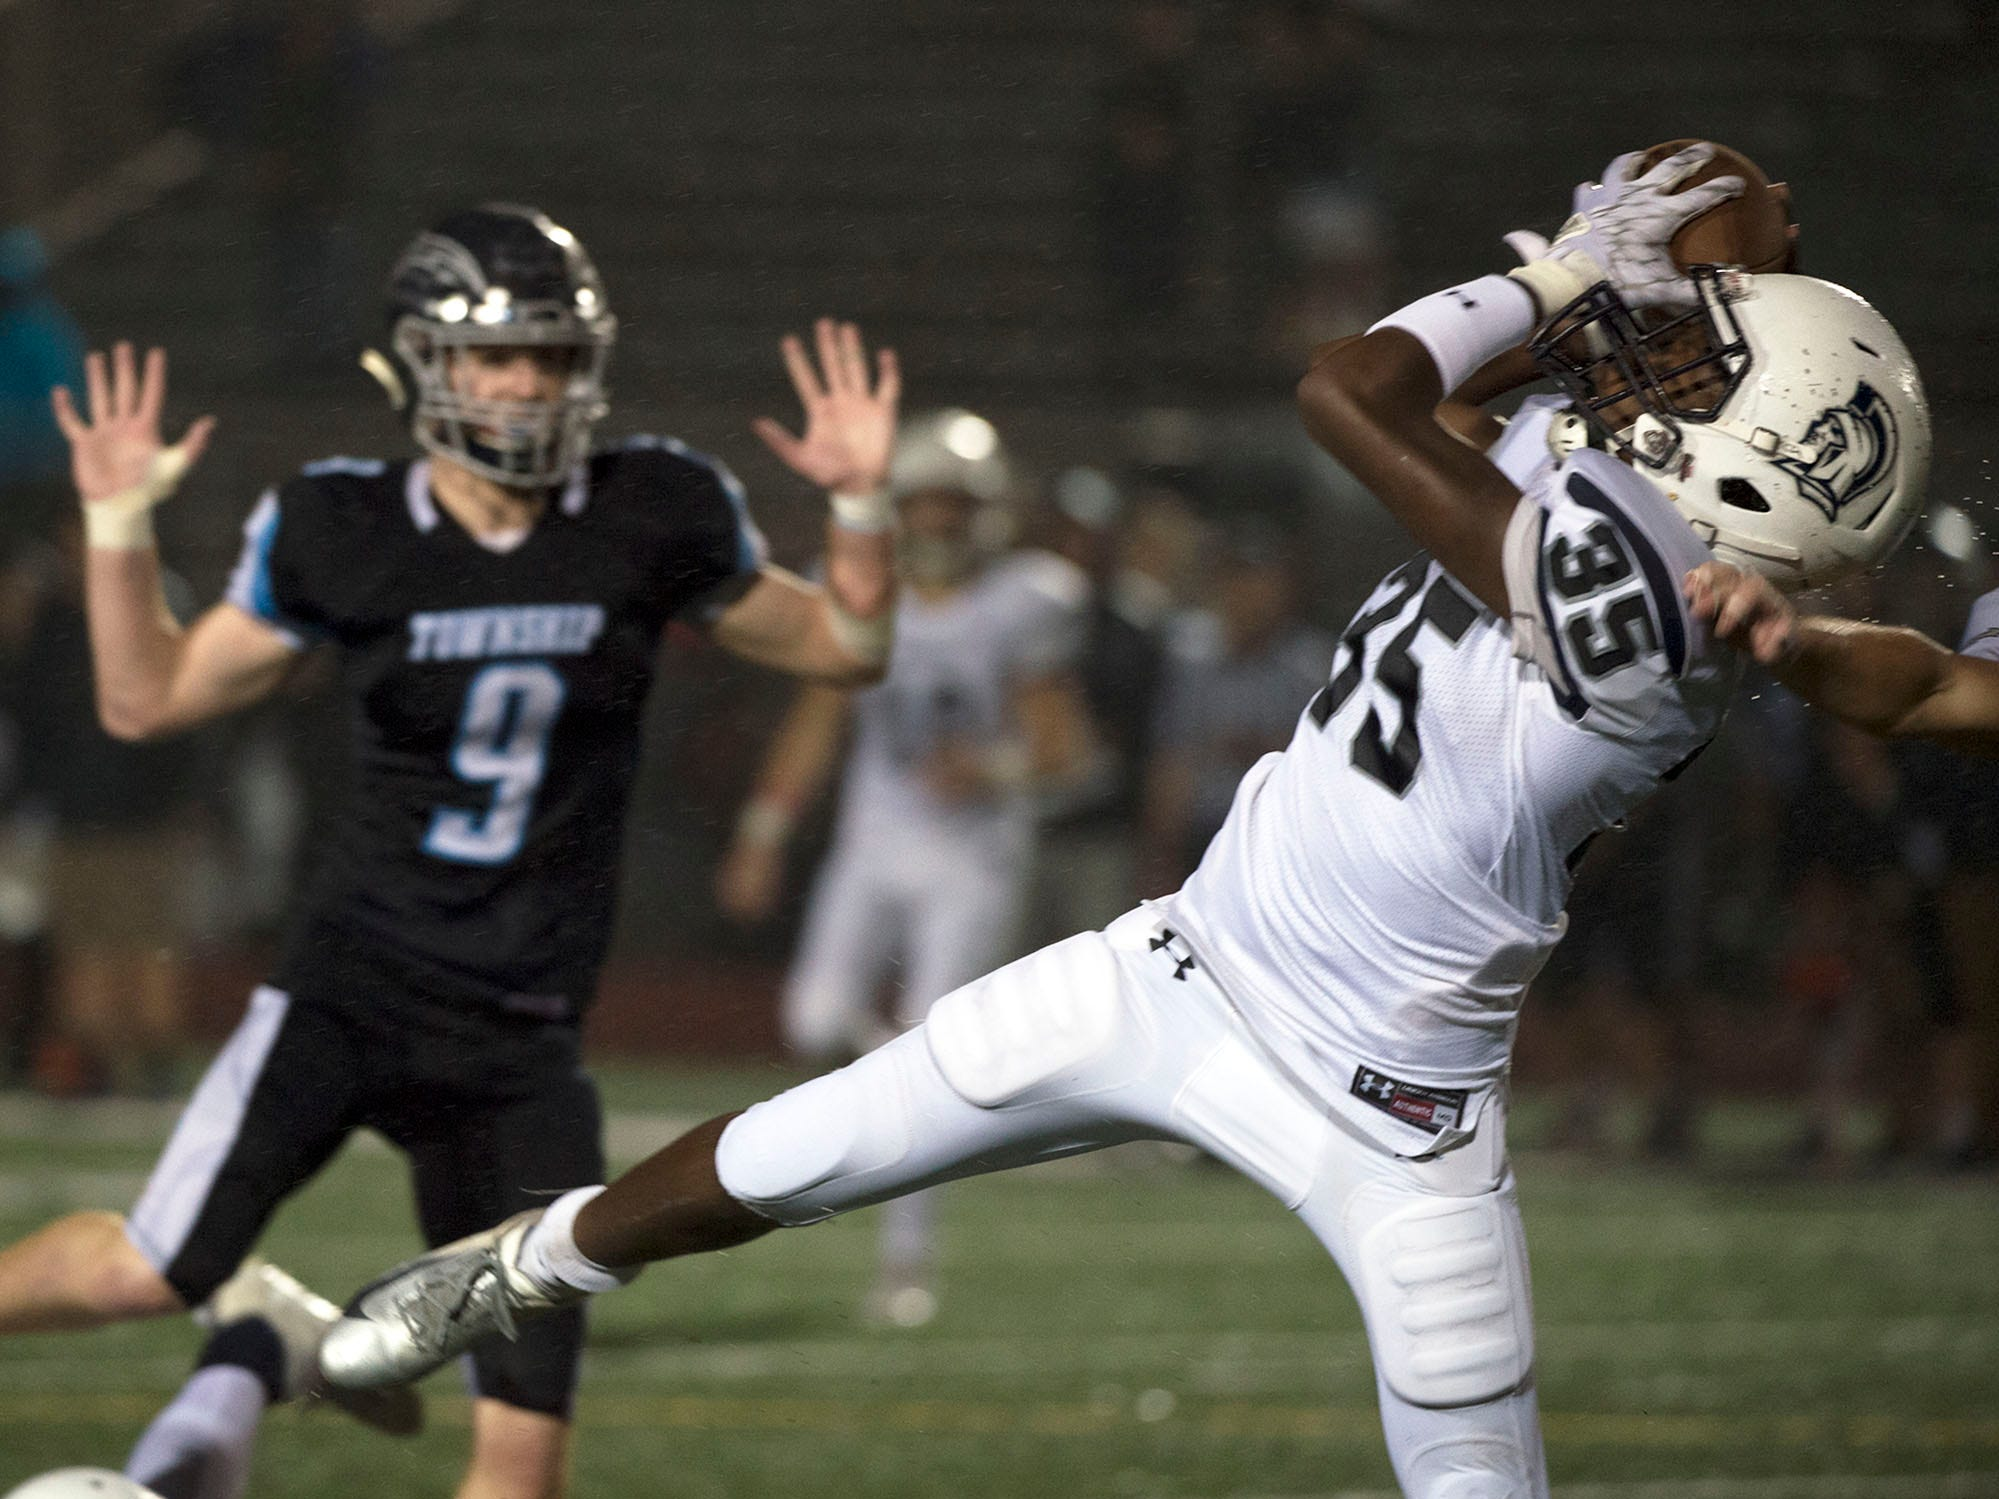 Chambersburg's DaQuan Rogers (35) catches a pass in front of Manheim Central's Jon Engel. Chambersburg Trojans dropped a close game 20-17 to Manheim Township Blue Streaks in the rain during PIAA District 3 playoff football on Friday, Nov. 2, 2018.